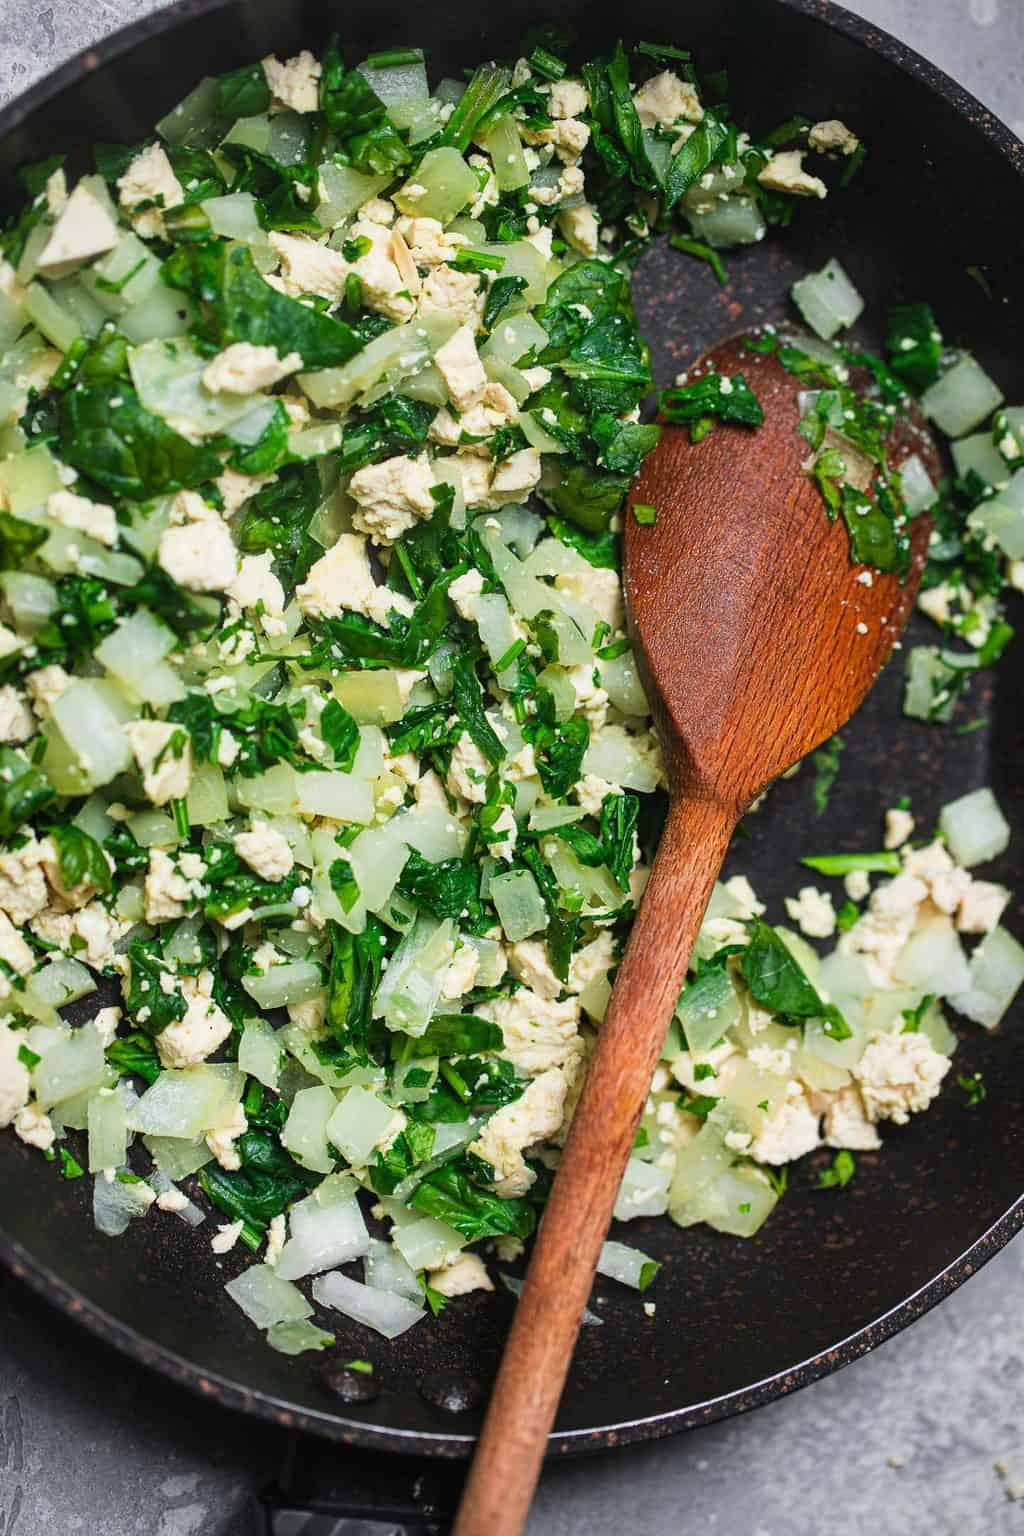 Tofu spinach and onion in a frying pan